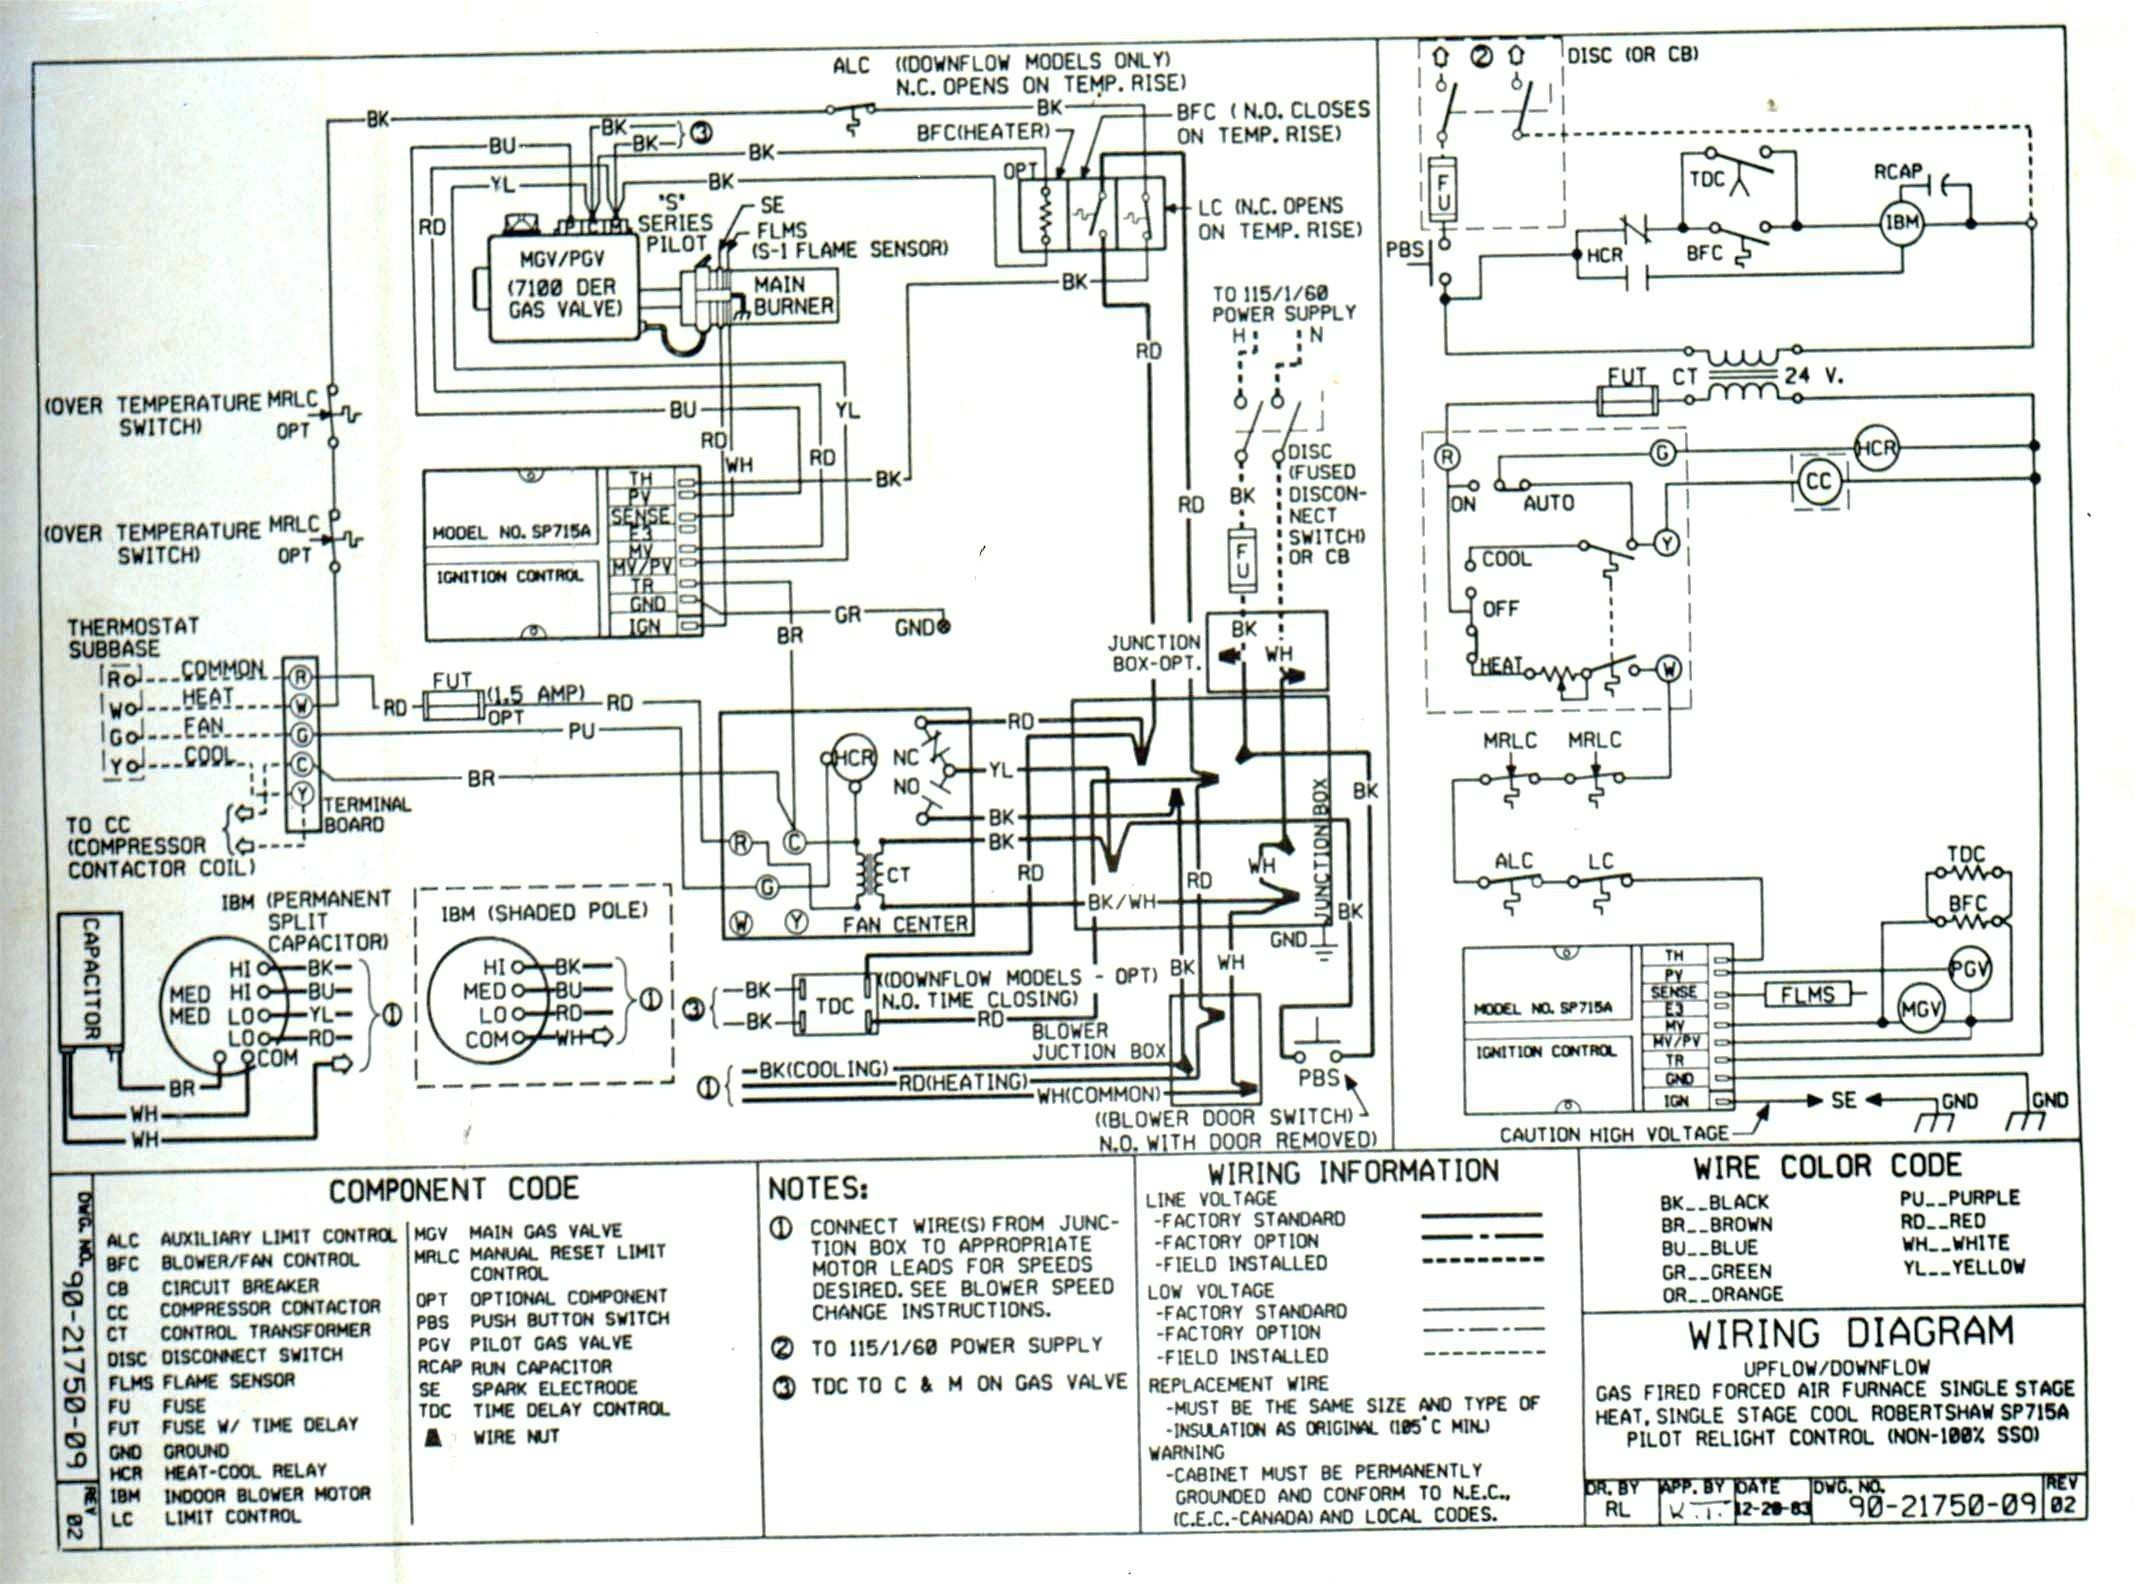 Central Ac Unit Motor Wiring Diagram